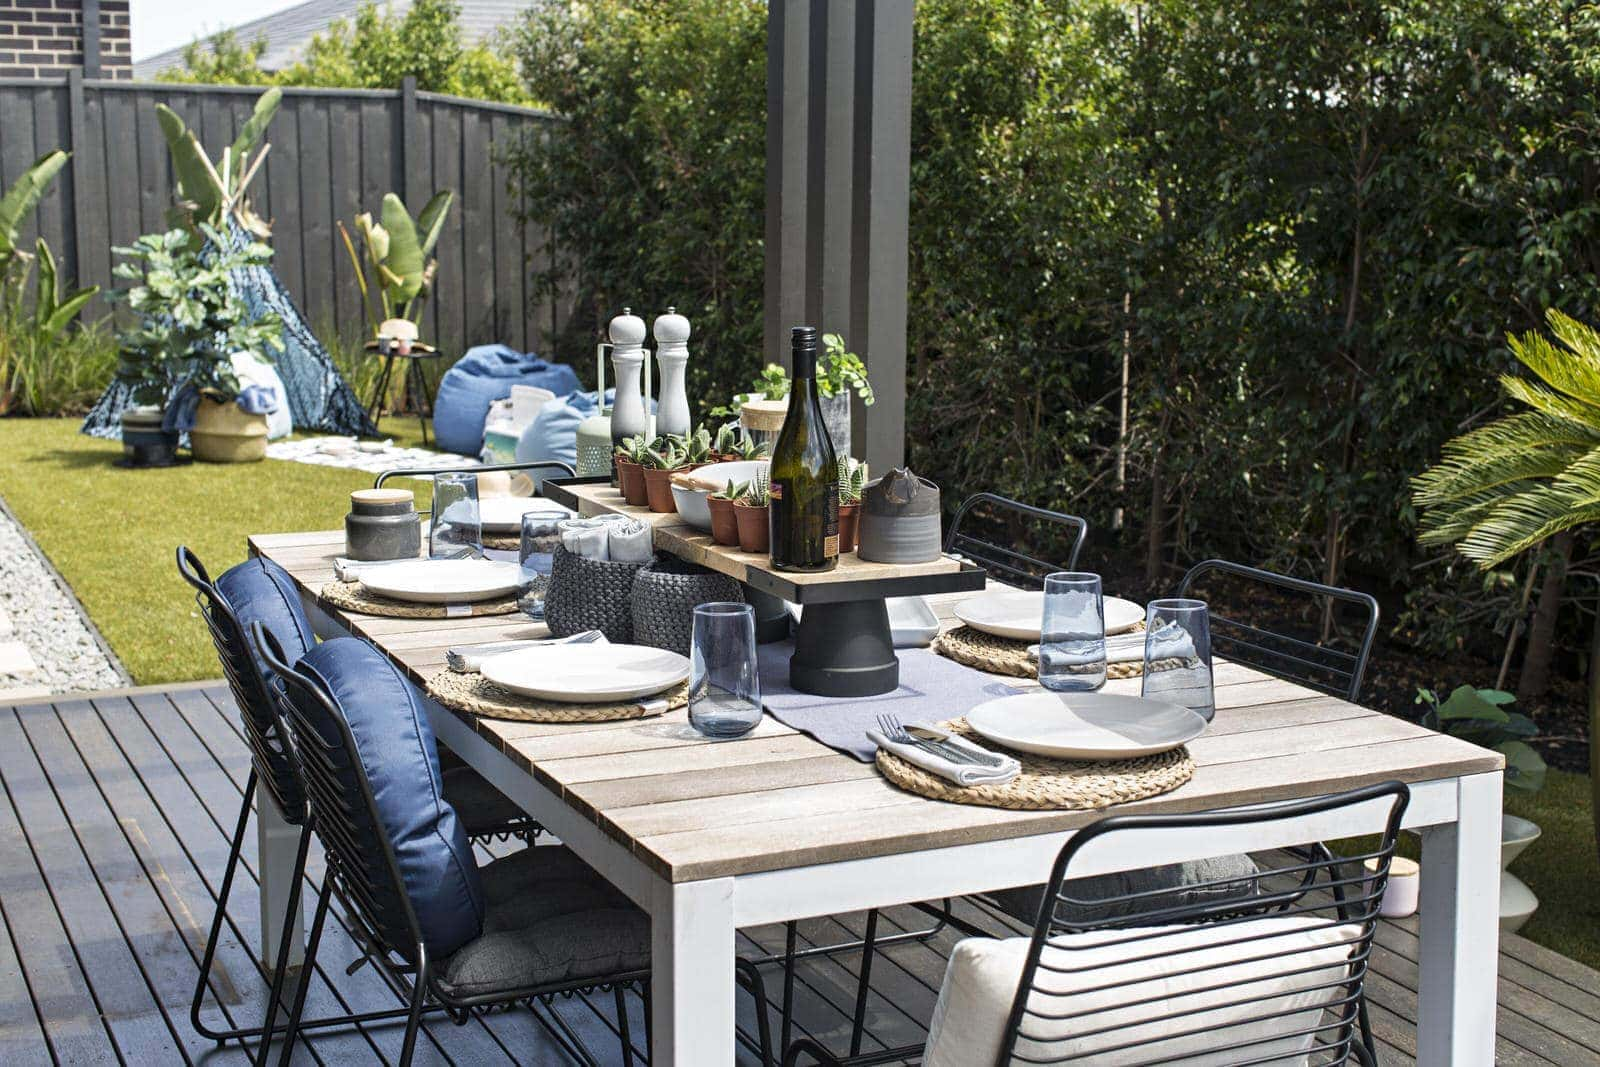 kmart outdoor cushions and black outdoor chairs